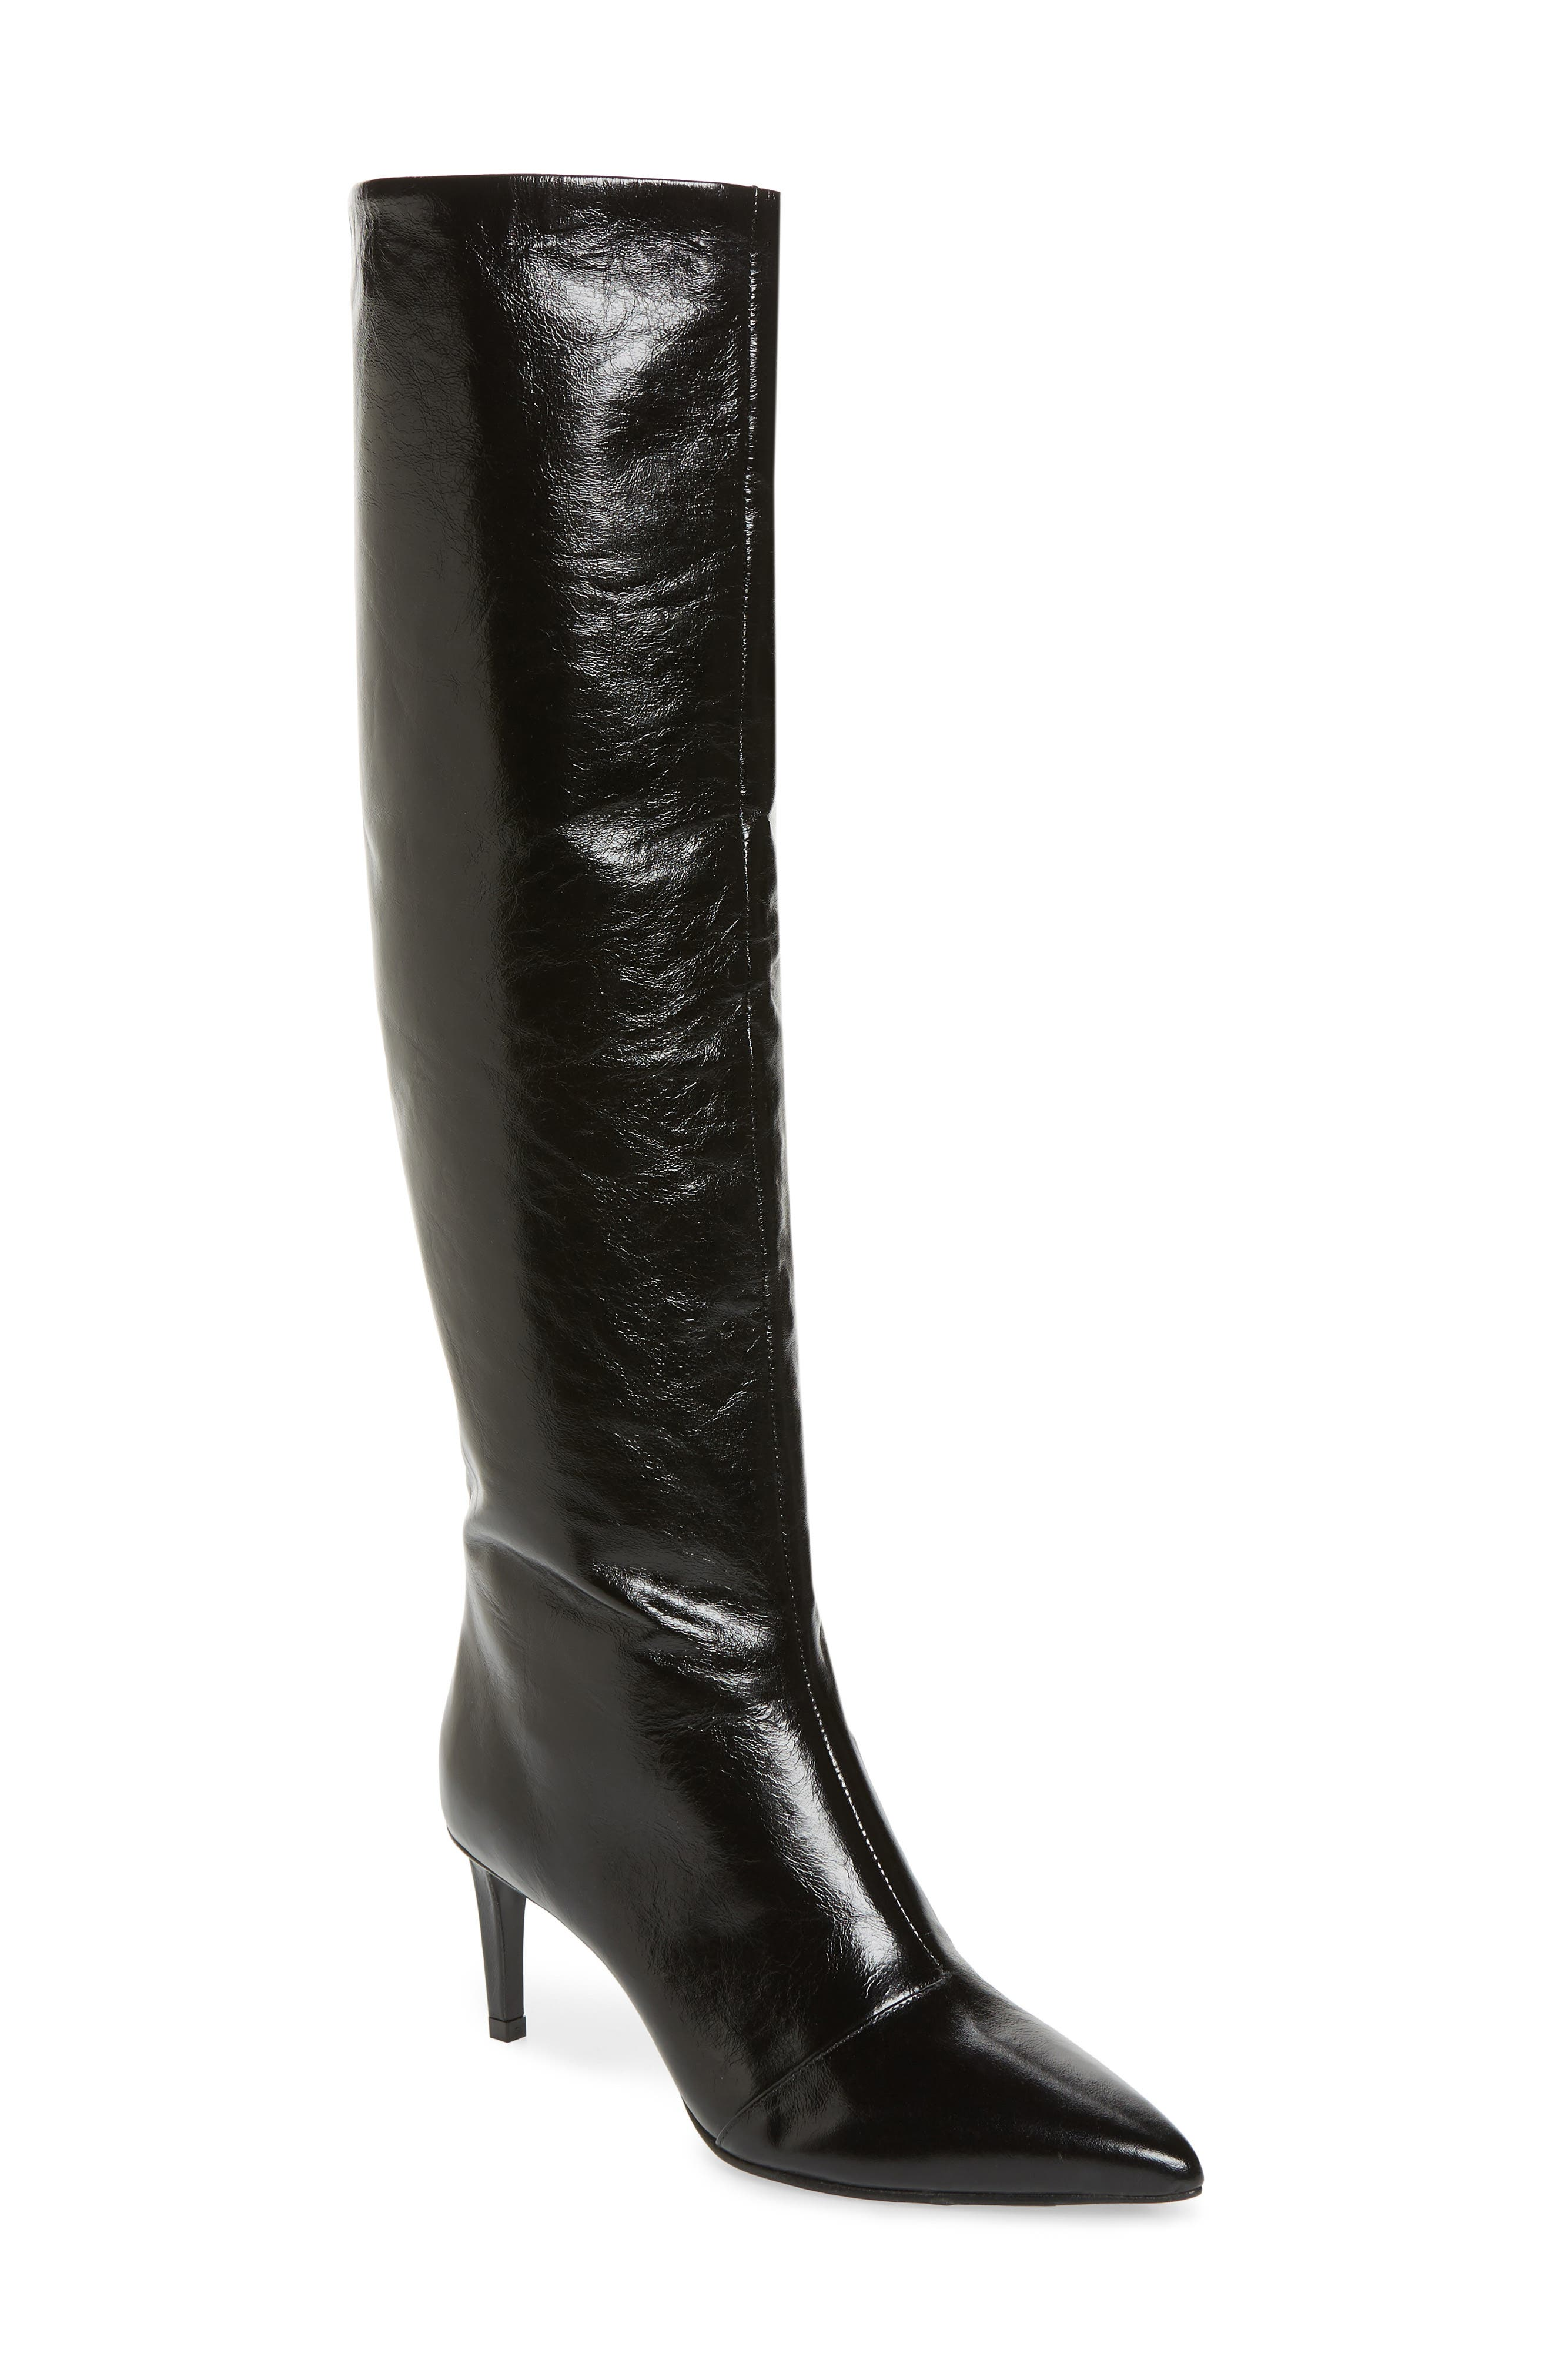 Image of Rag & Bone Beha Knee High Boot